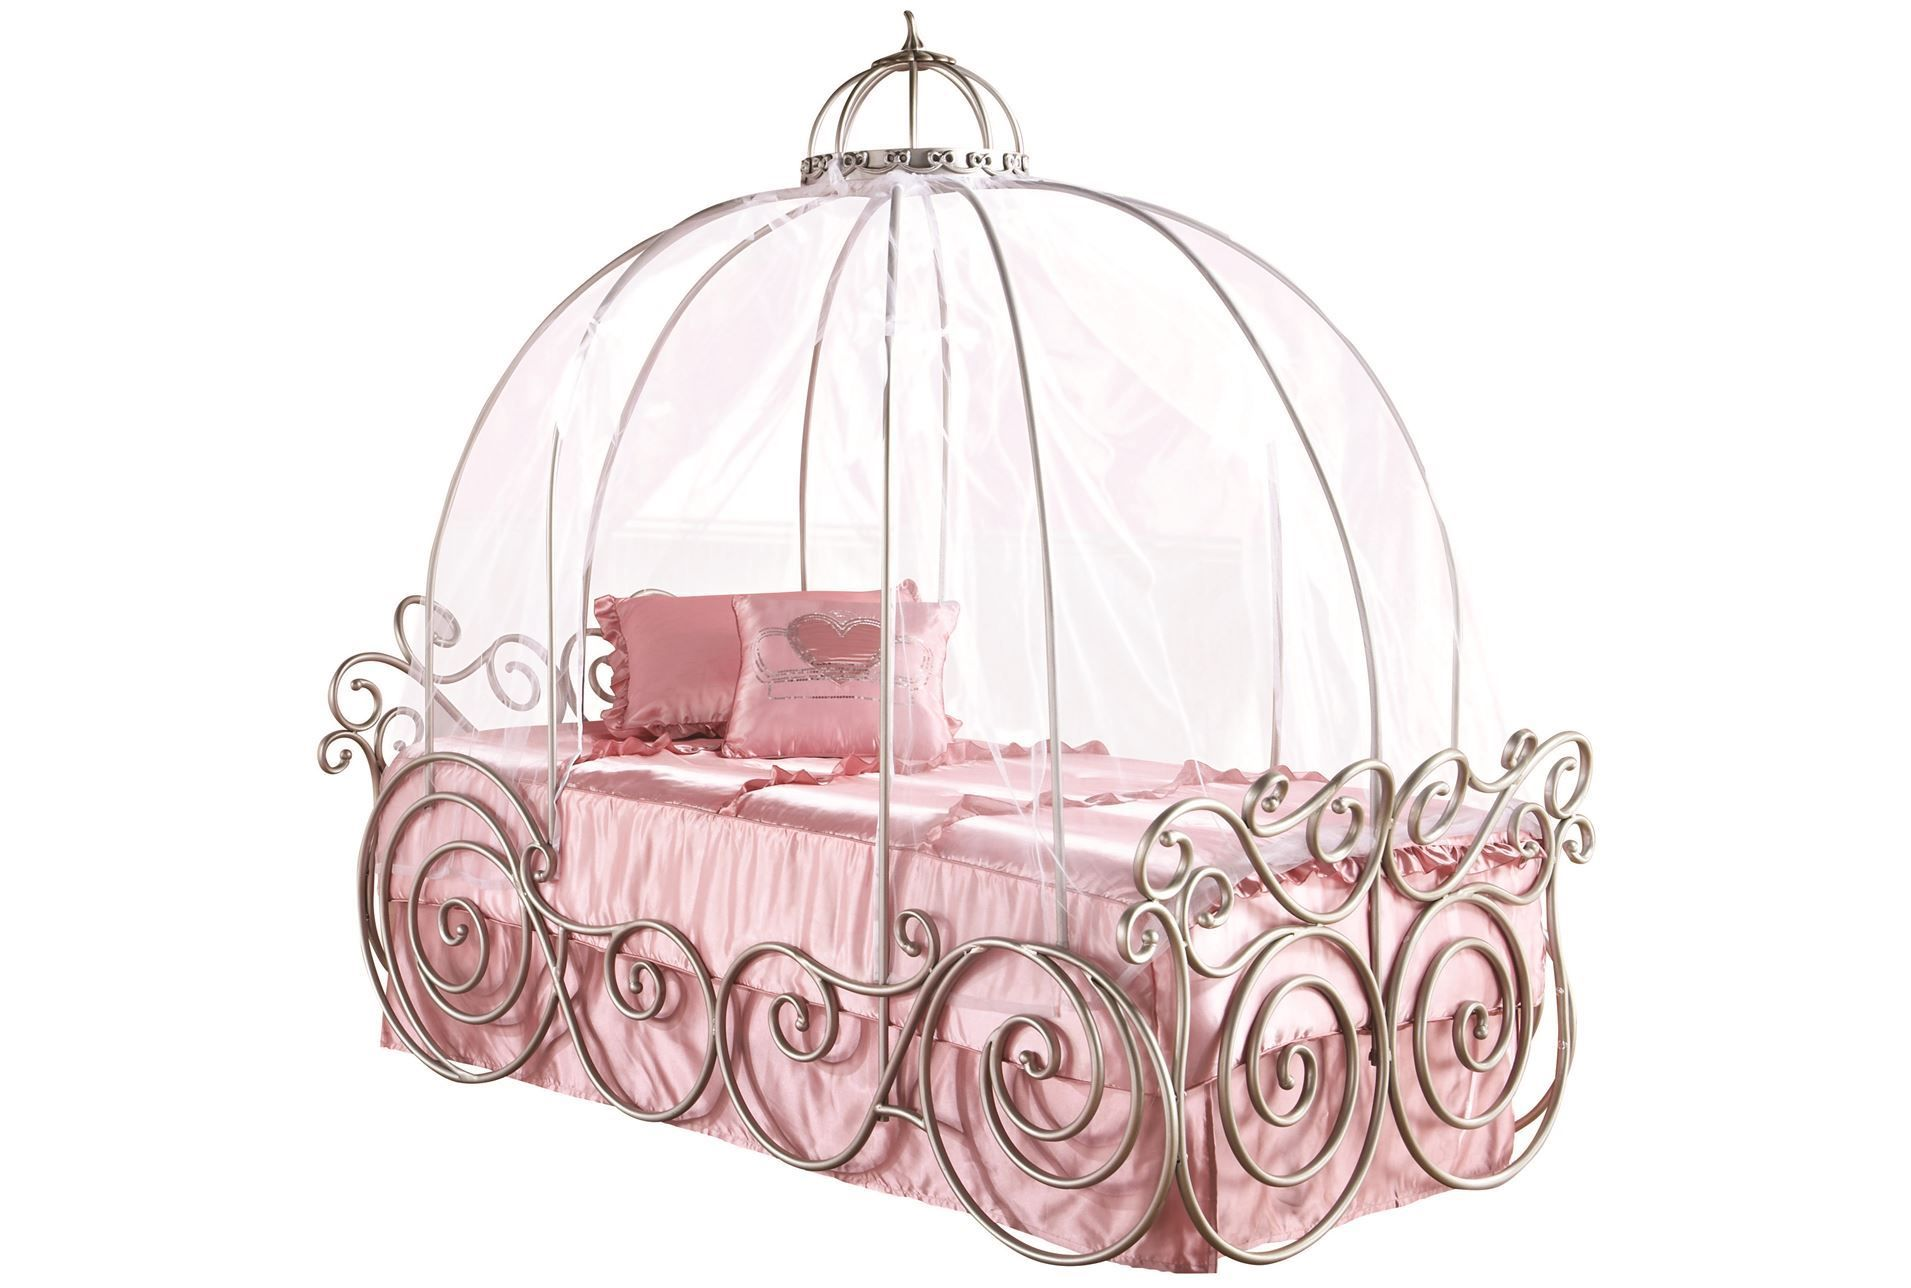 Enchanting Princess Carriage Bed For Kid Bedroom Furniture Ideas: Silver  Iron Princess Carriage Bed With